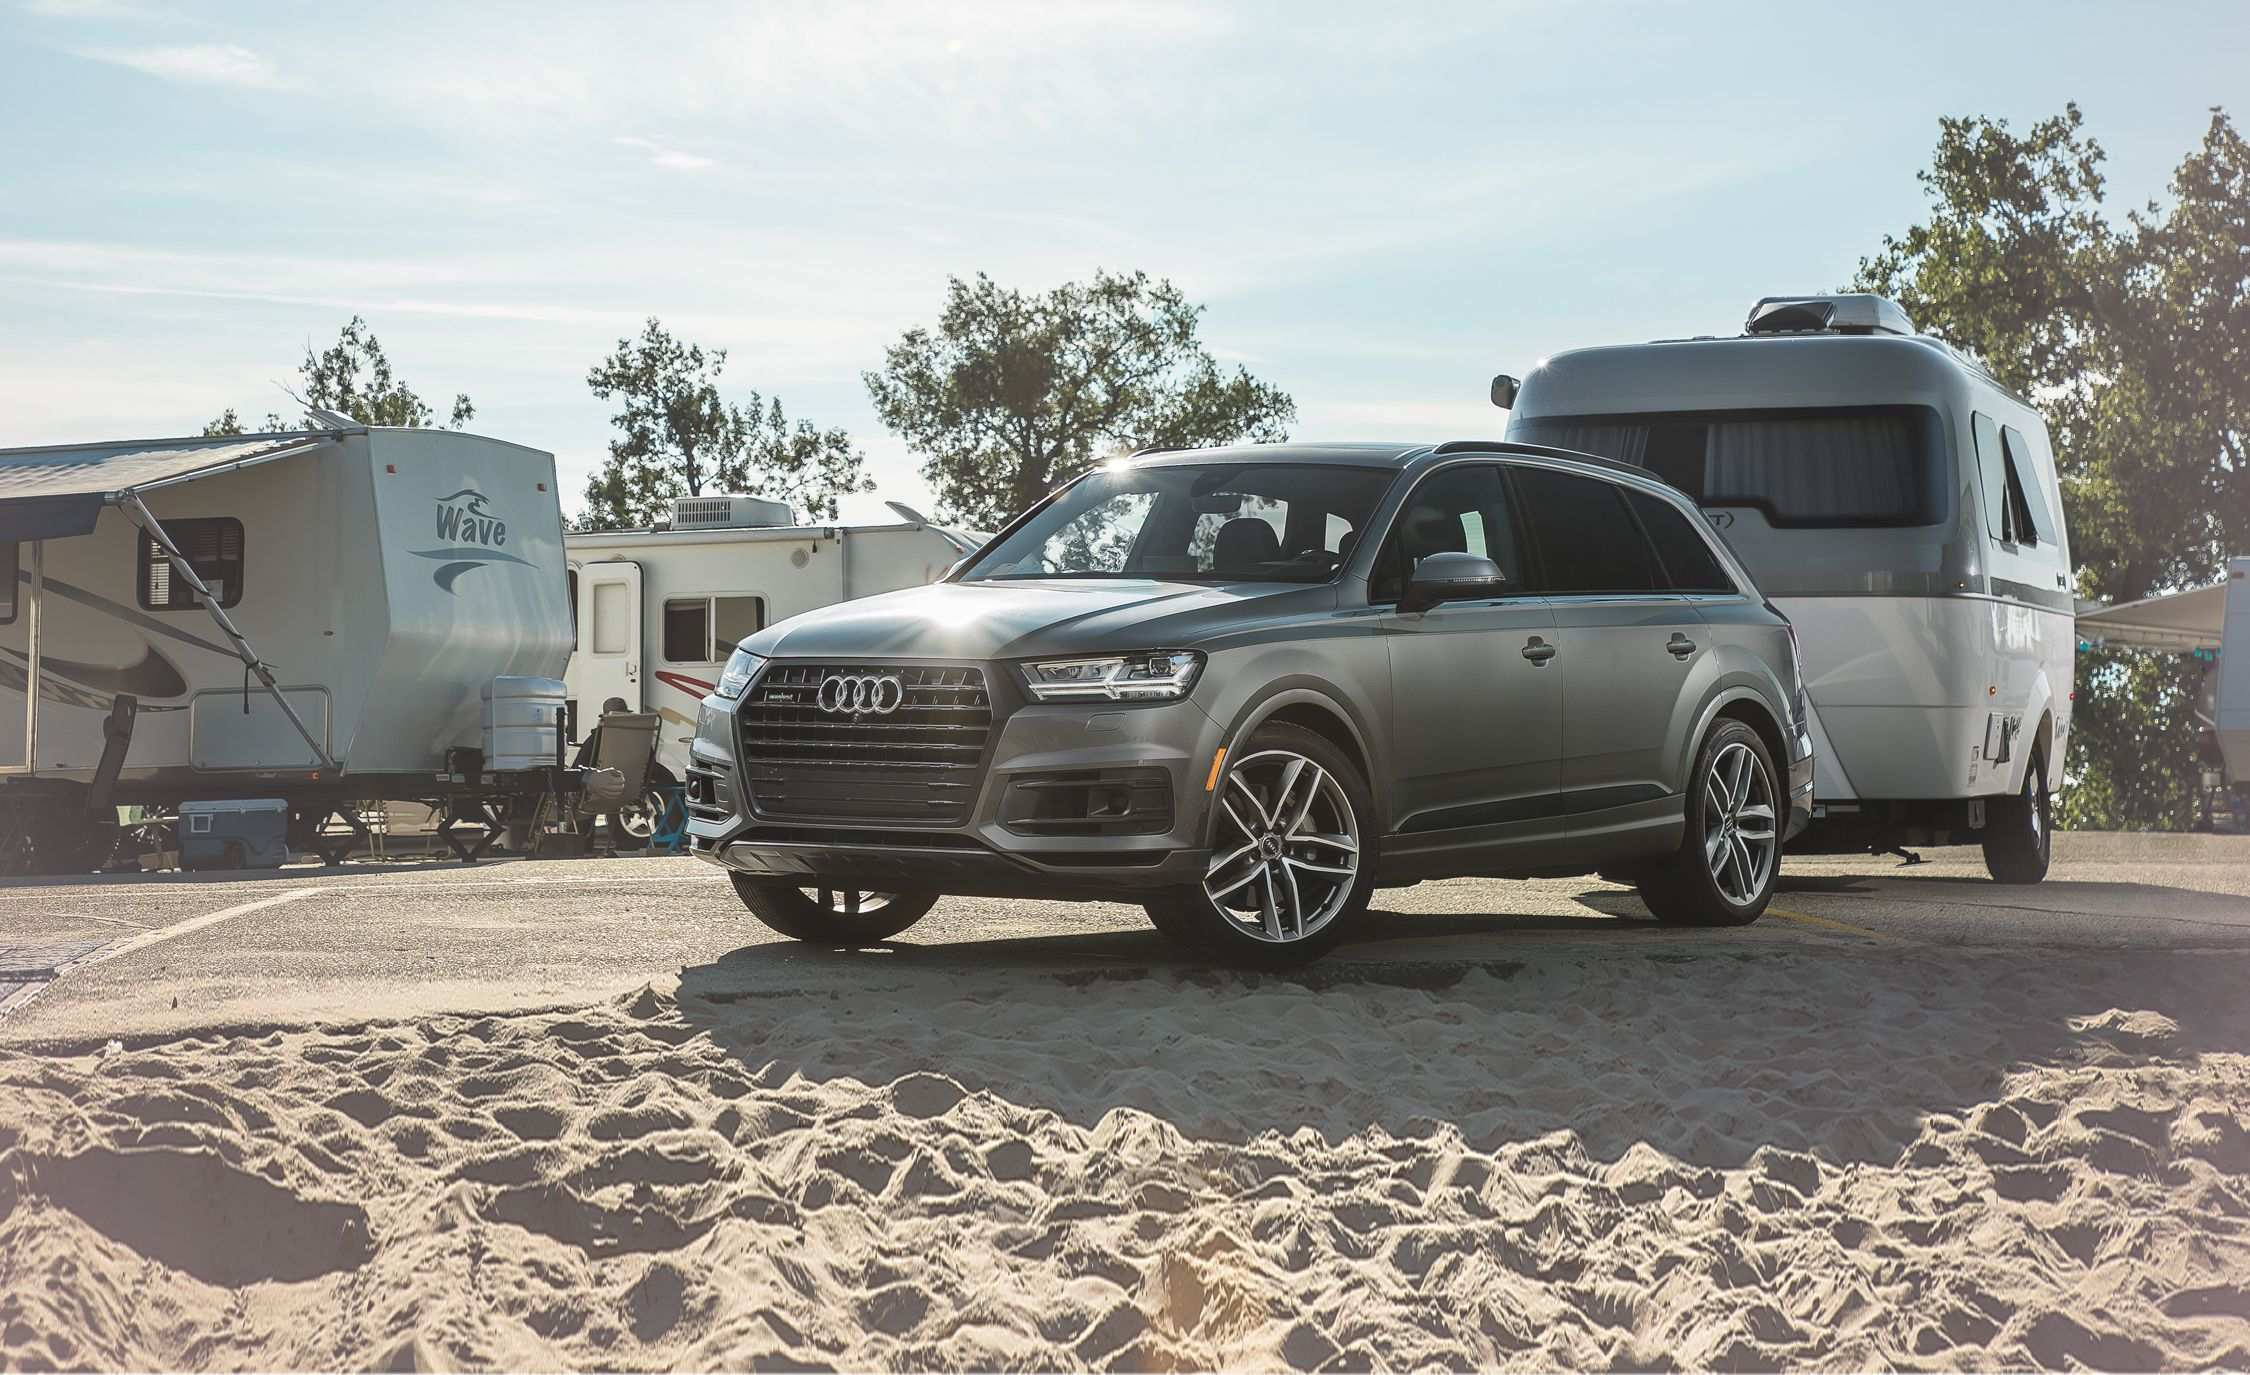 34 Great New When Will 2019 Audi Q7 Be Available New Engine Review with New When Will 2019 Audi Q7 Be Available New Engine